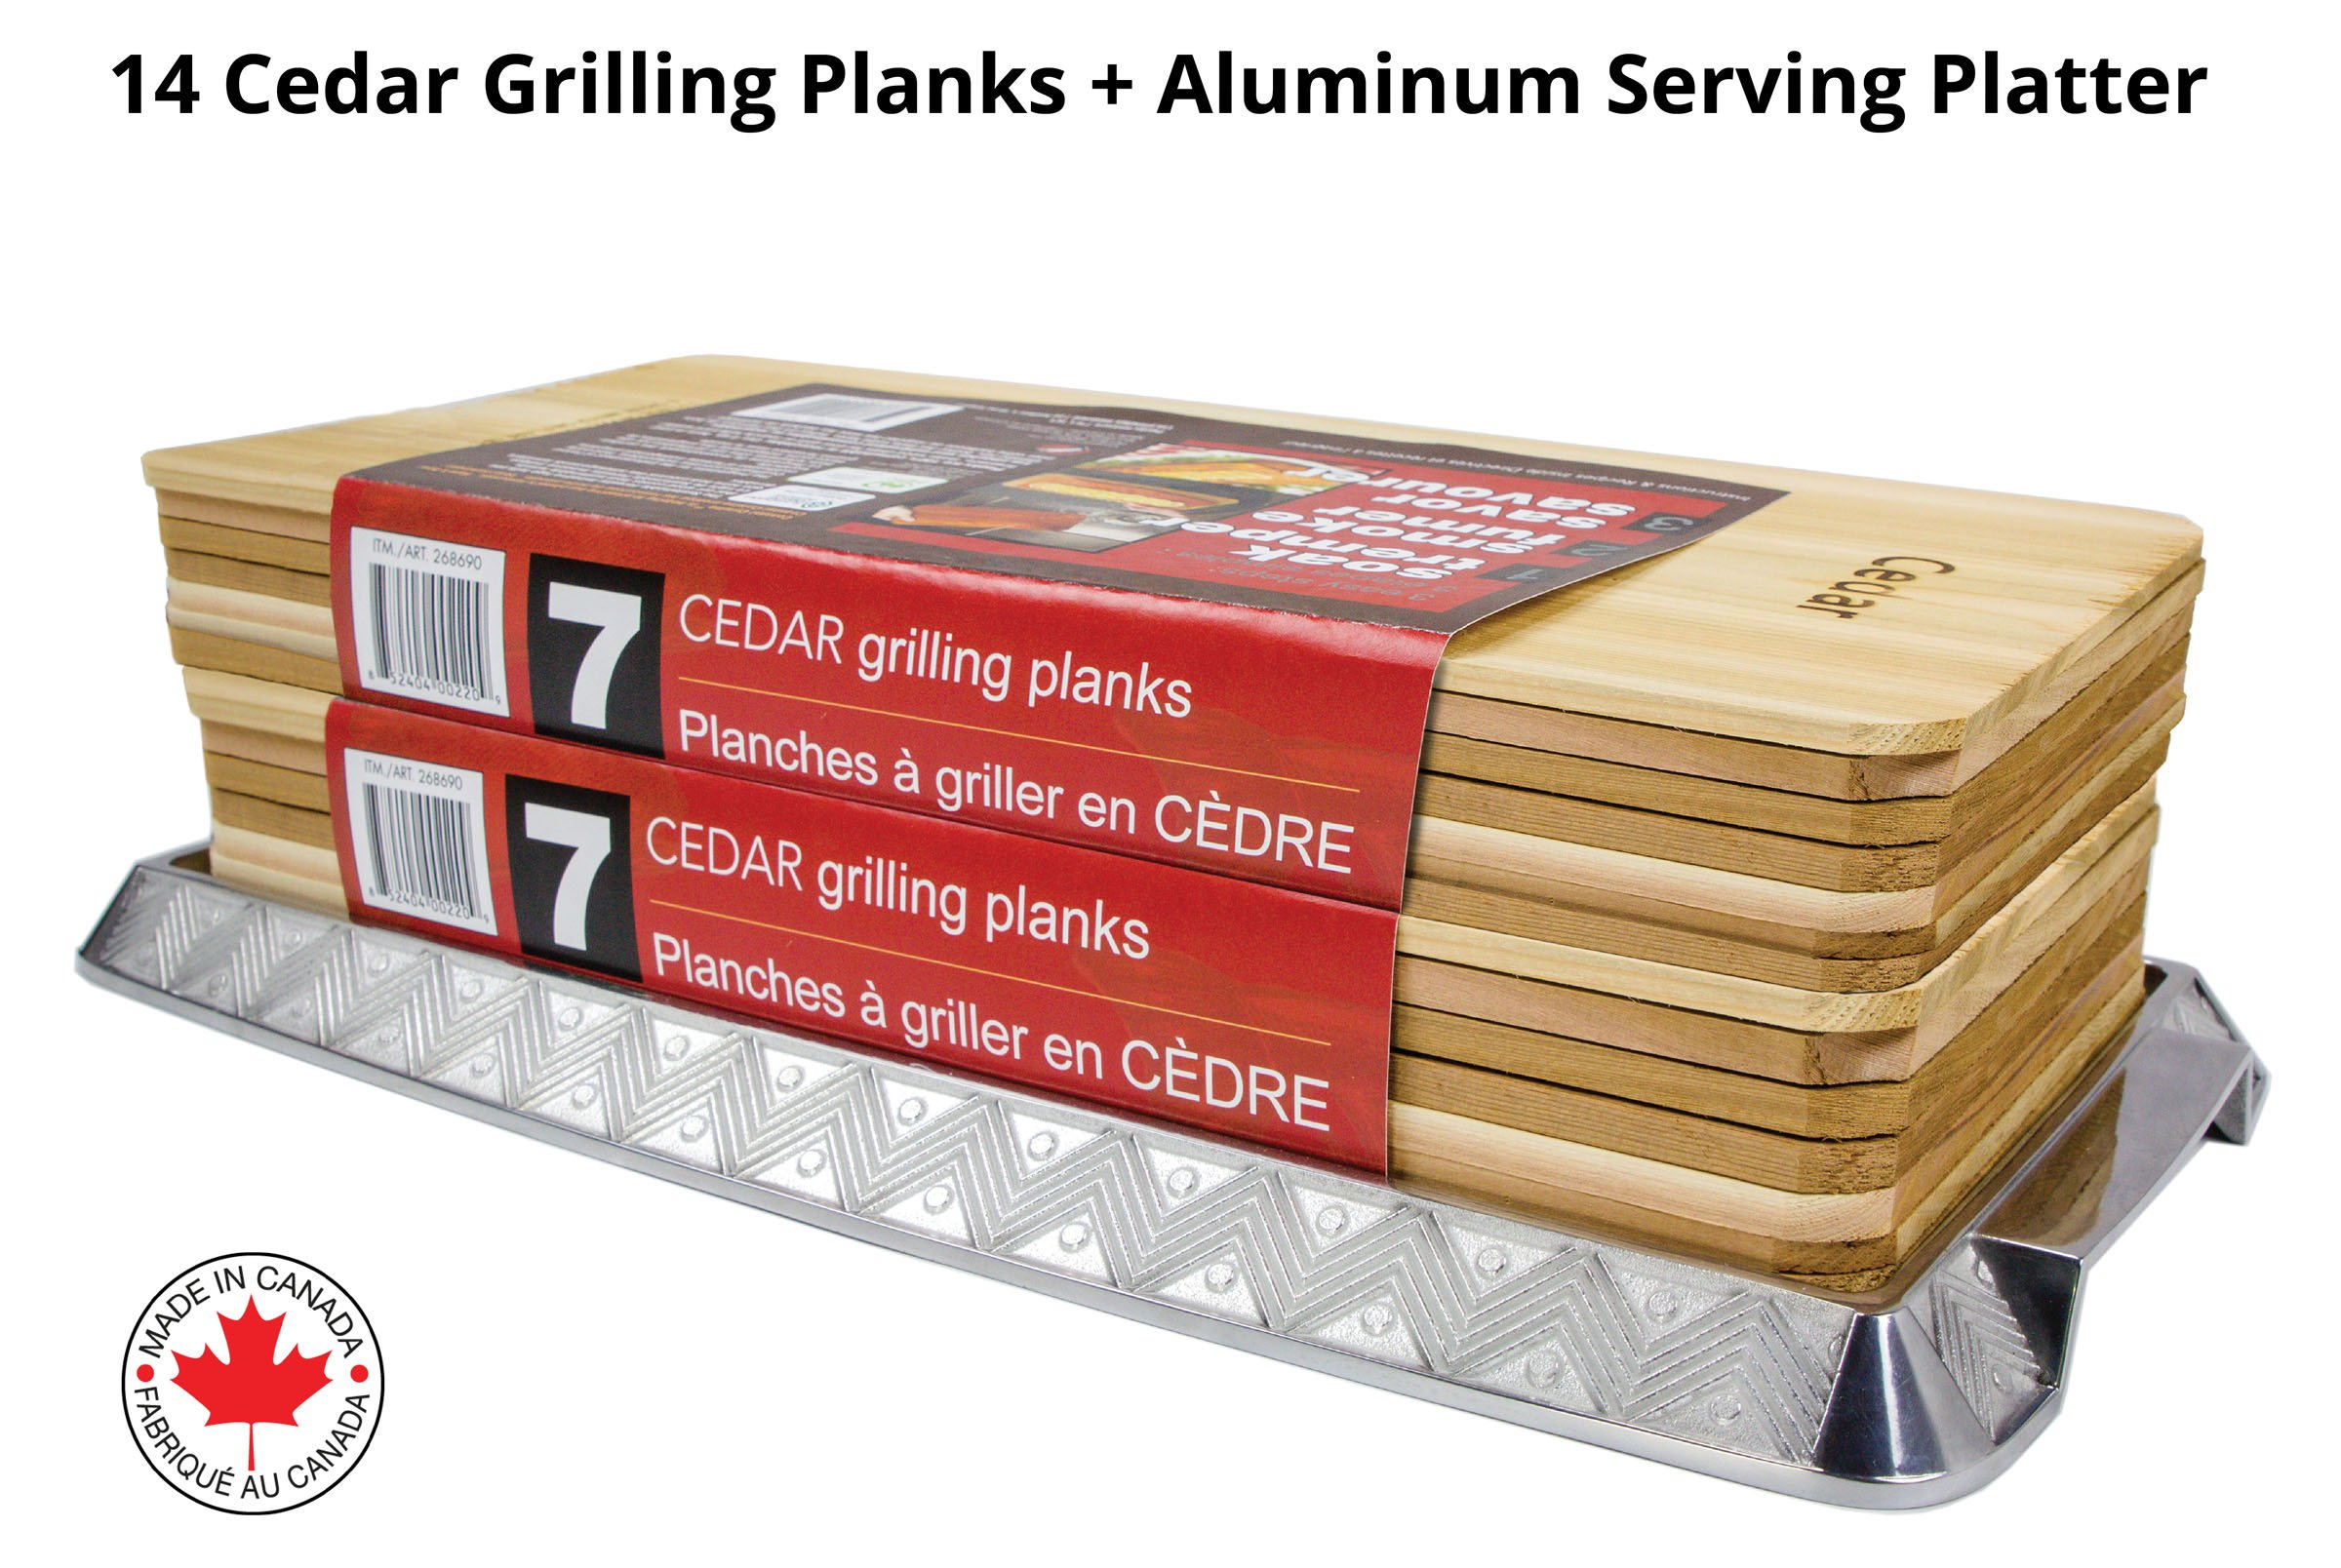 Coastal Cuisine 14 Pack 7x16'' Cedar Grilling Planks + Aluminum Serving Platter - Perfect for any grilling enthusiast.  Enjoy delicious restaurant quality meals and a stunning presentation. by Coastal Cuisine